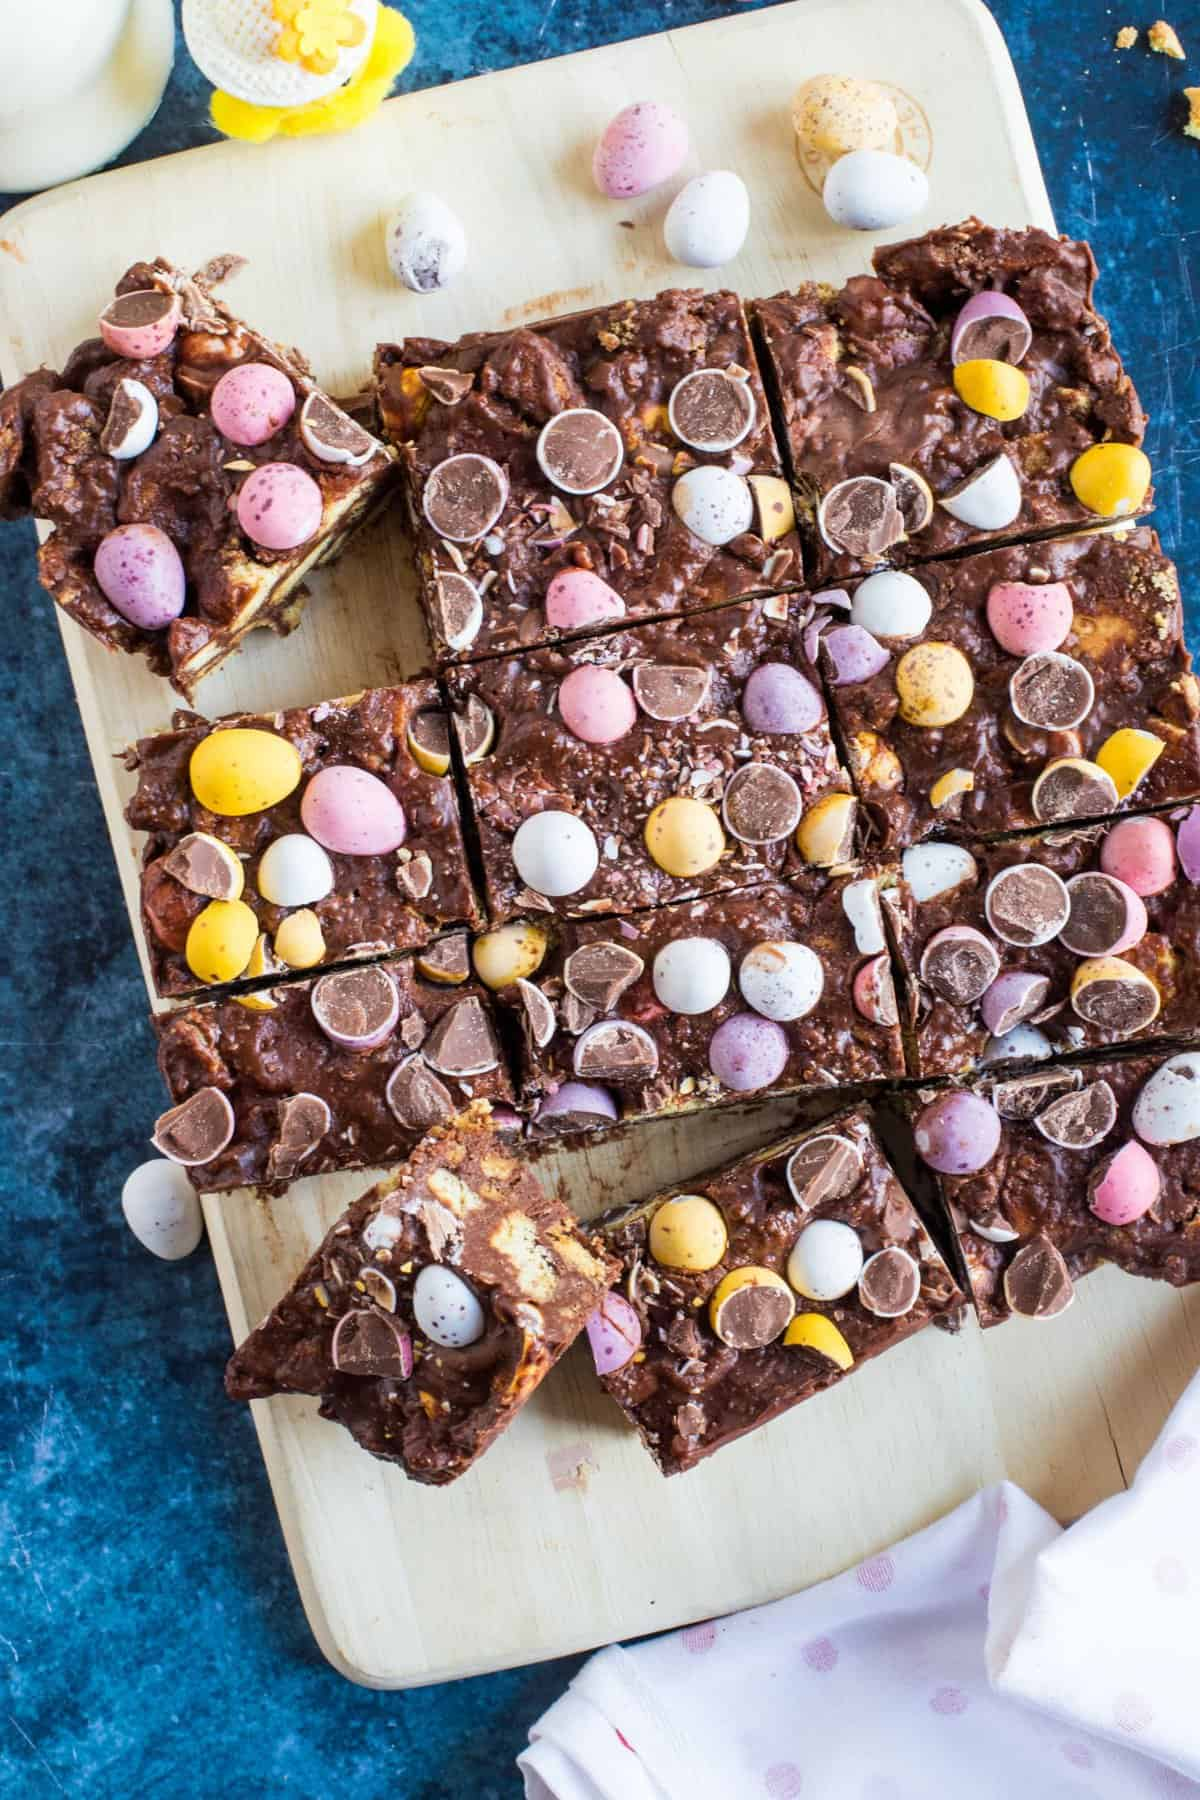 This no-bake chocolate mini egg tiffin is the perfect chocolate treat for Easter, or any time of year for that matter! Crushed digestive biscuits, melted dark and milk chocolate and sweet golden syrup encase the all-important Cadburys mini eggs in this decadent chocolate delight. Not for the faint-hearted, that's for sure!